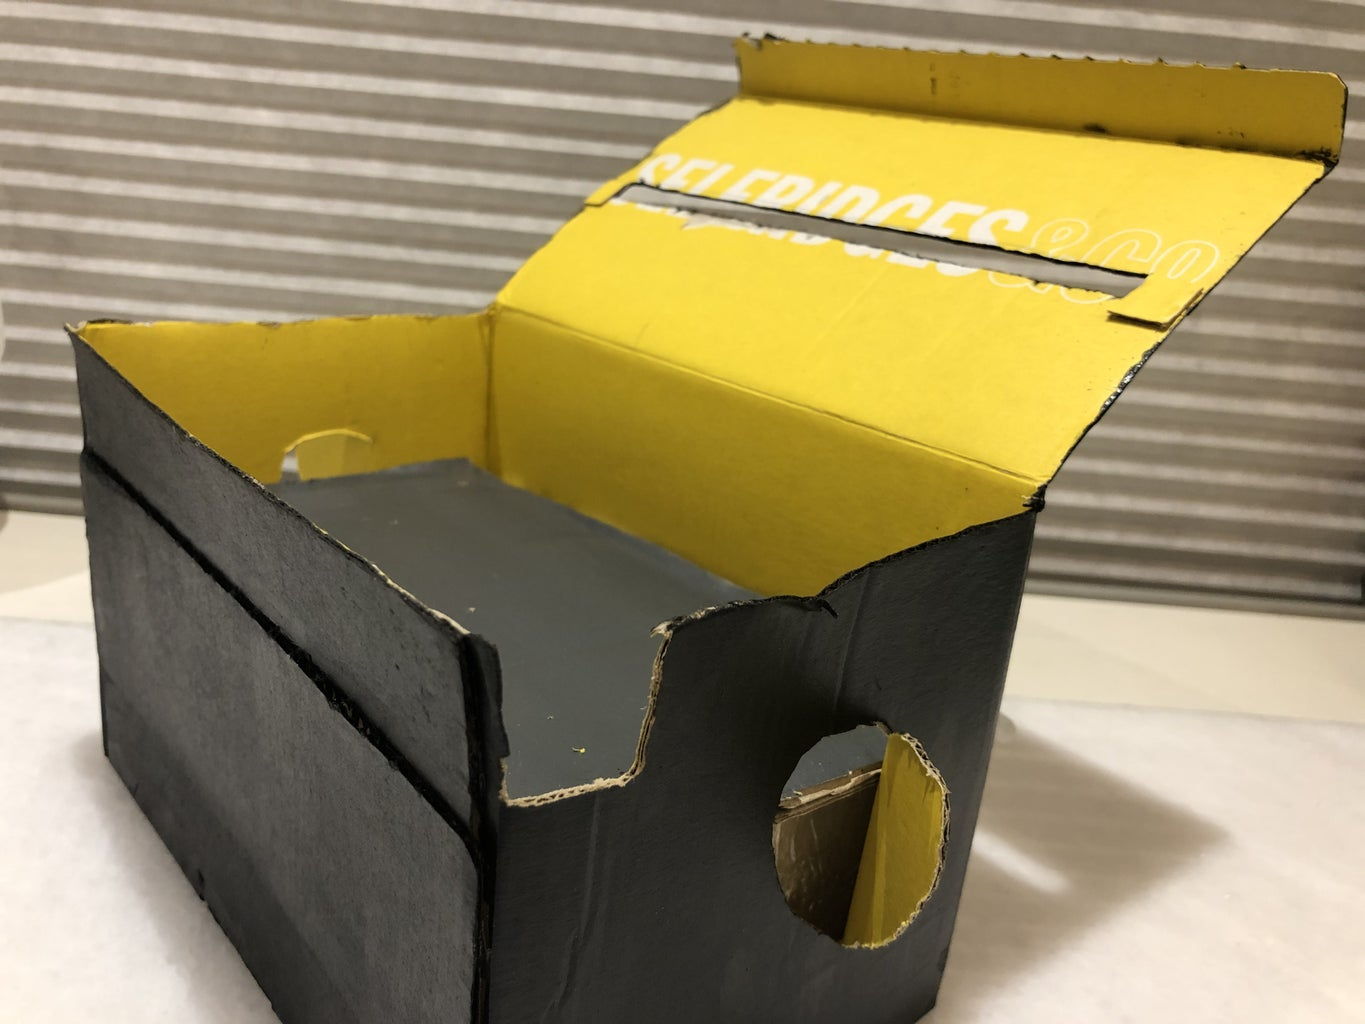 Make the Conainer of Your Game Box